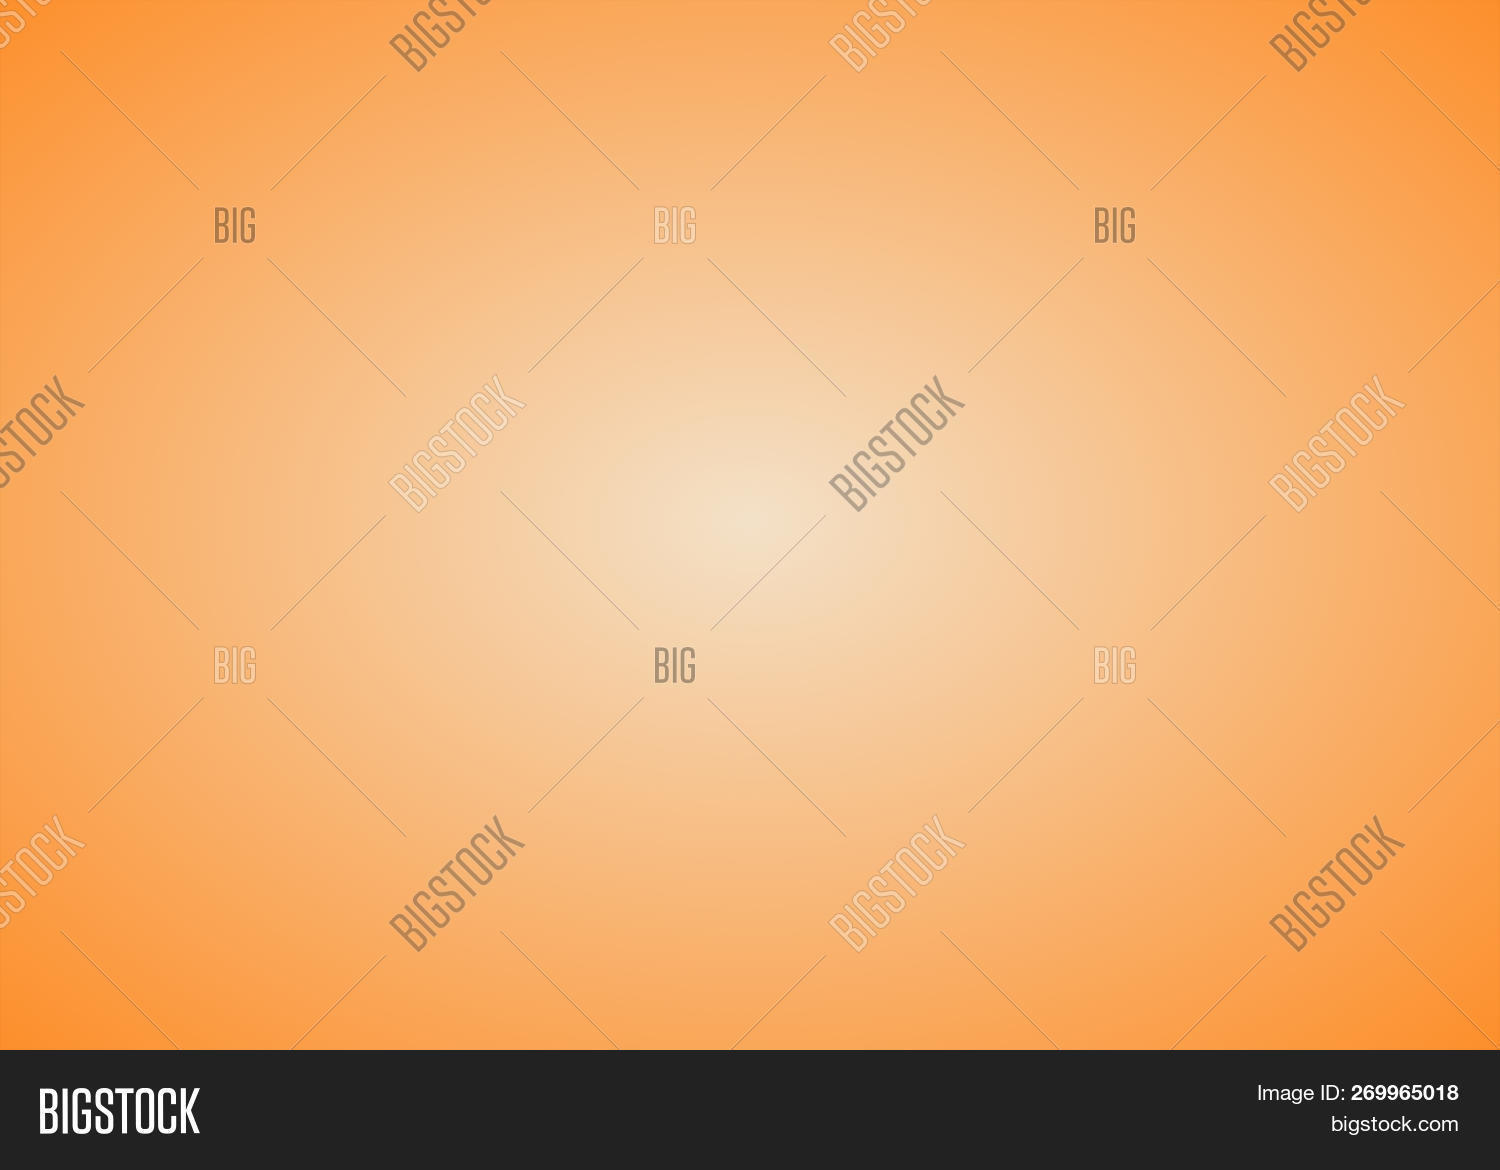 abstract,art,backdrop,background,banner,blank,blue,blur,blurred,blurry,border,bright,color,colorful,design,digital,effect,elegant,gold,golden,gradient,graphic,green,illustration,light,metal,orange,paper,pattern,radial,shiny,soft,template,texture,website,white,yellow